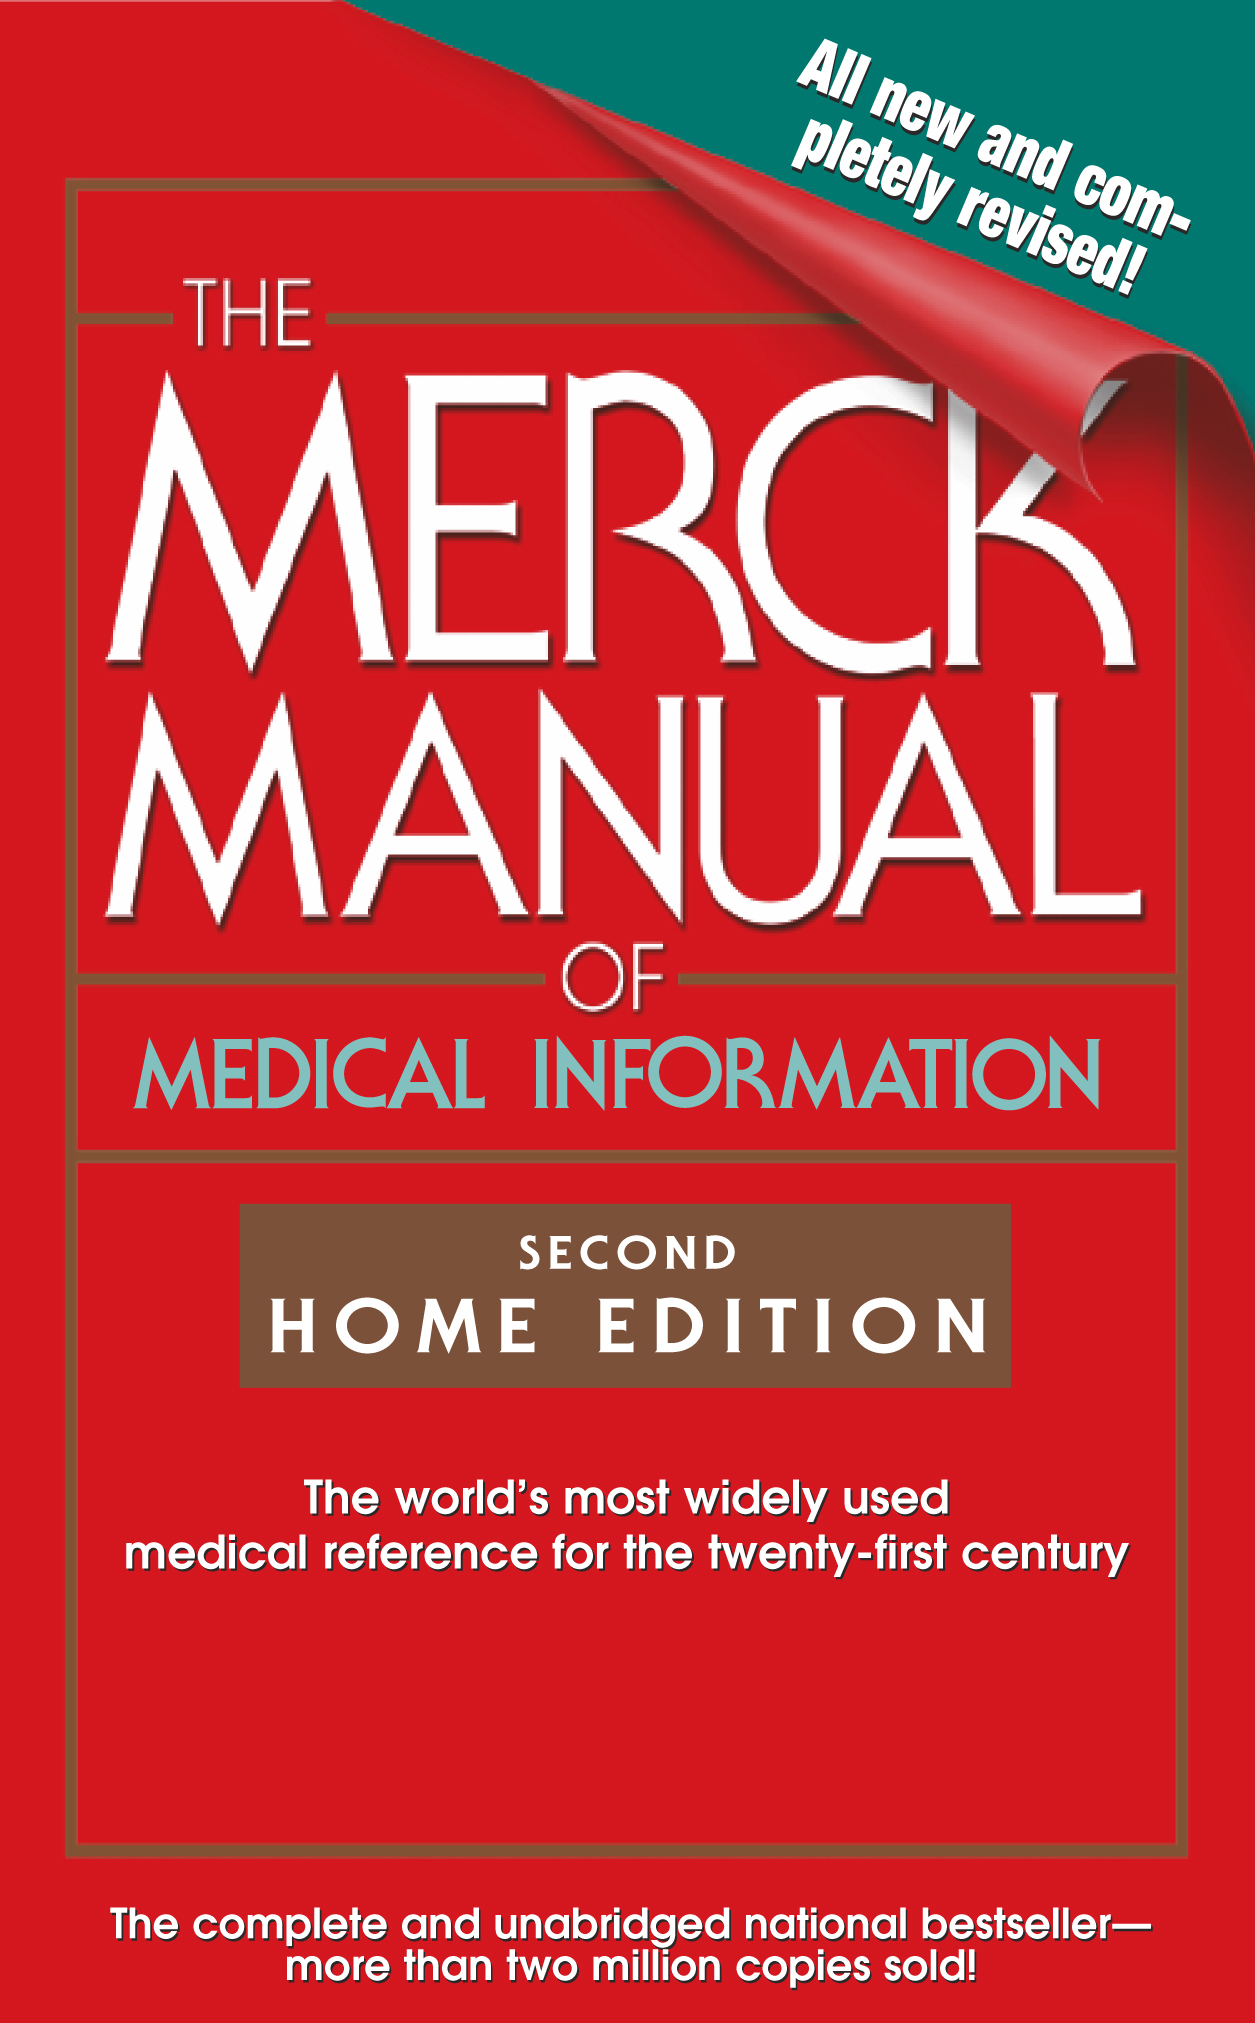 the merck manual of medical information book by mark h beers rh simonandschuster com 1899 Merck Manual Online Merck Manual Author